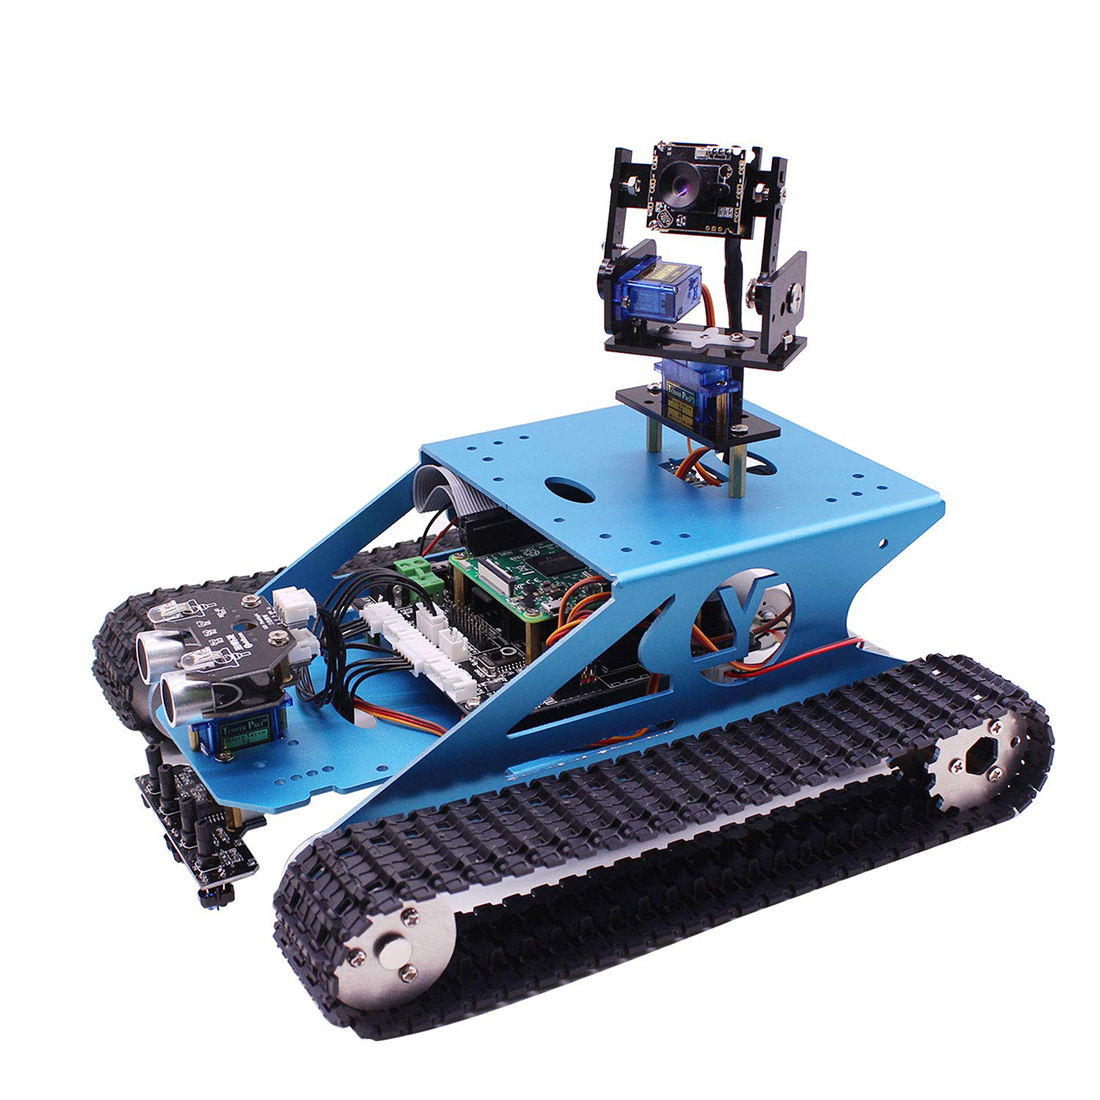 Tracked Tank Smart Robotic Bluetooth Video Programming Toy Self-Balance Car Robot Kit With Raspberry 4B (1G/2G/4G Memory)